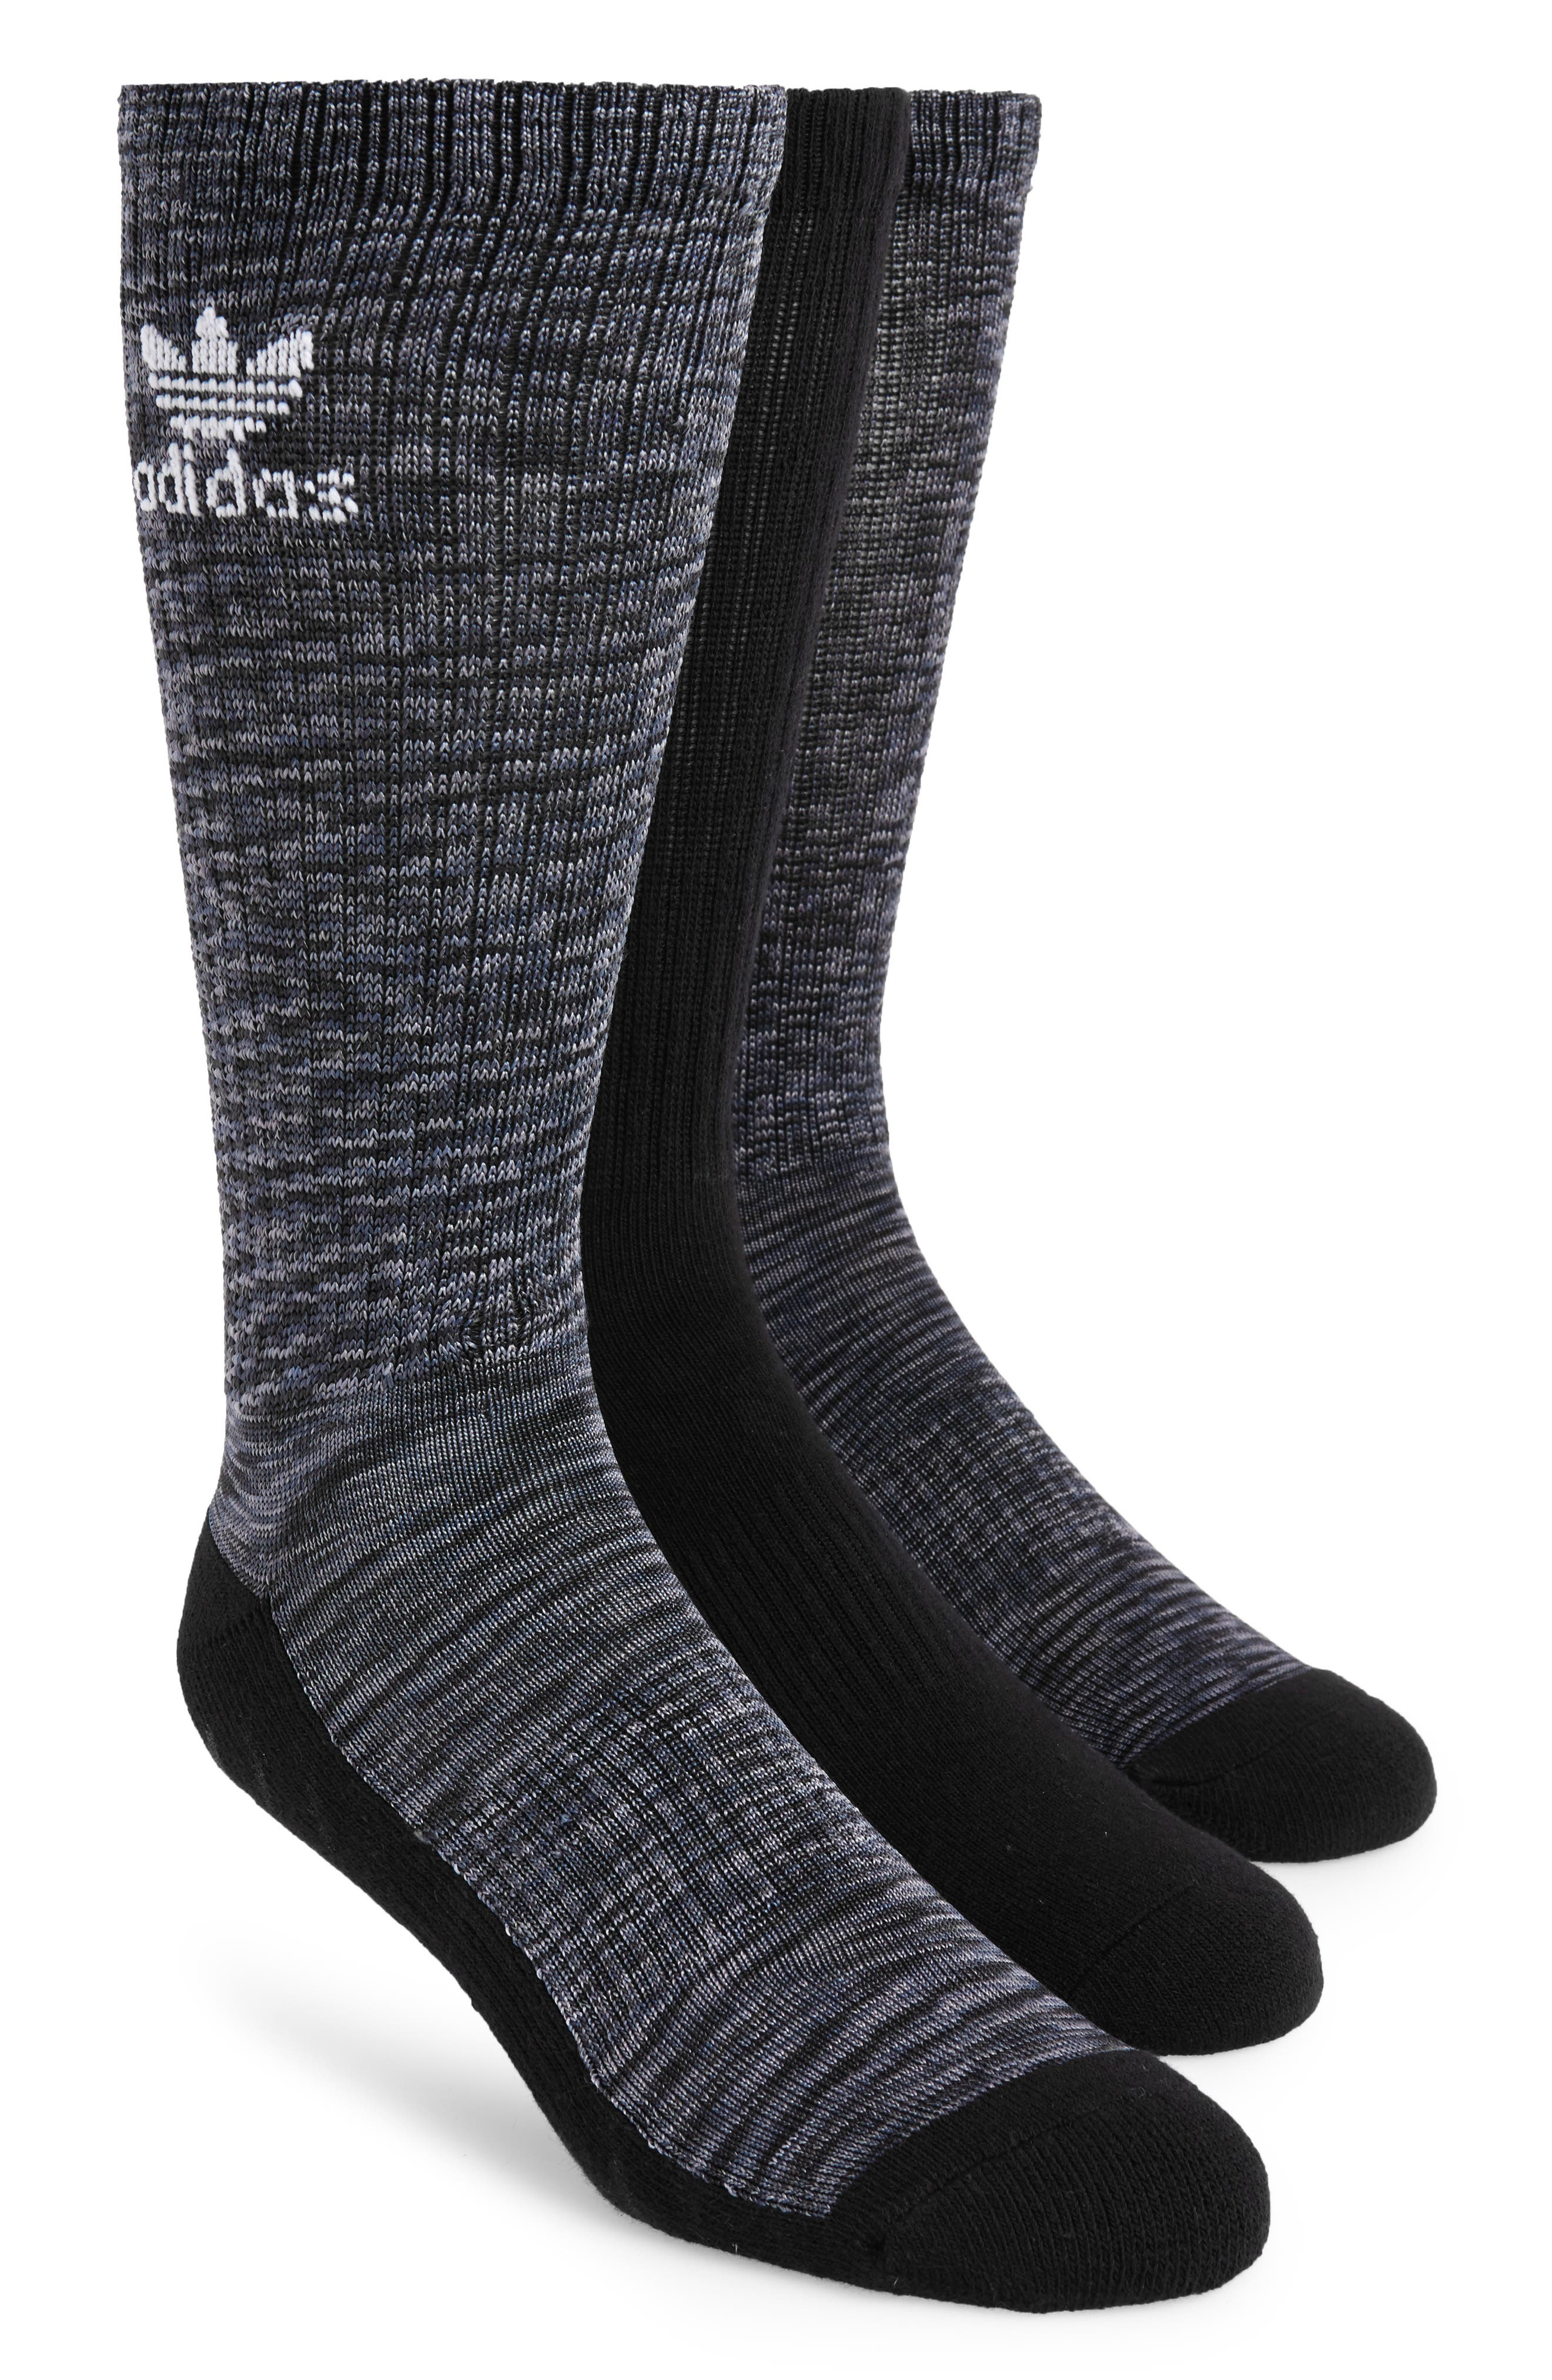 Main Image - adidas Originals 3-Pack Space Dye Crew Socks